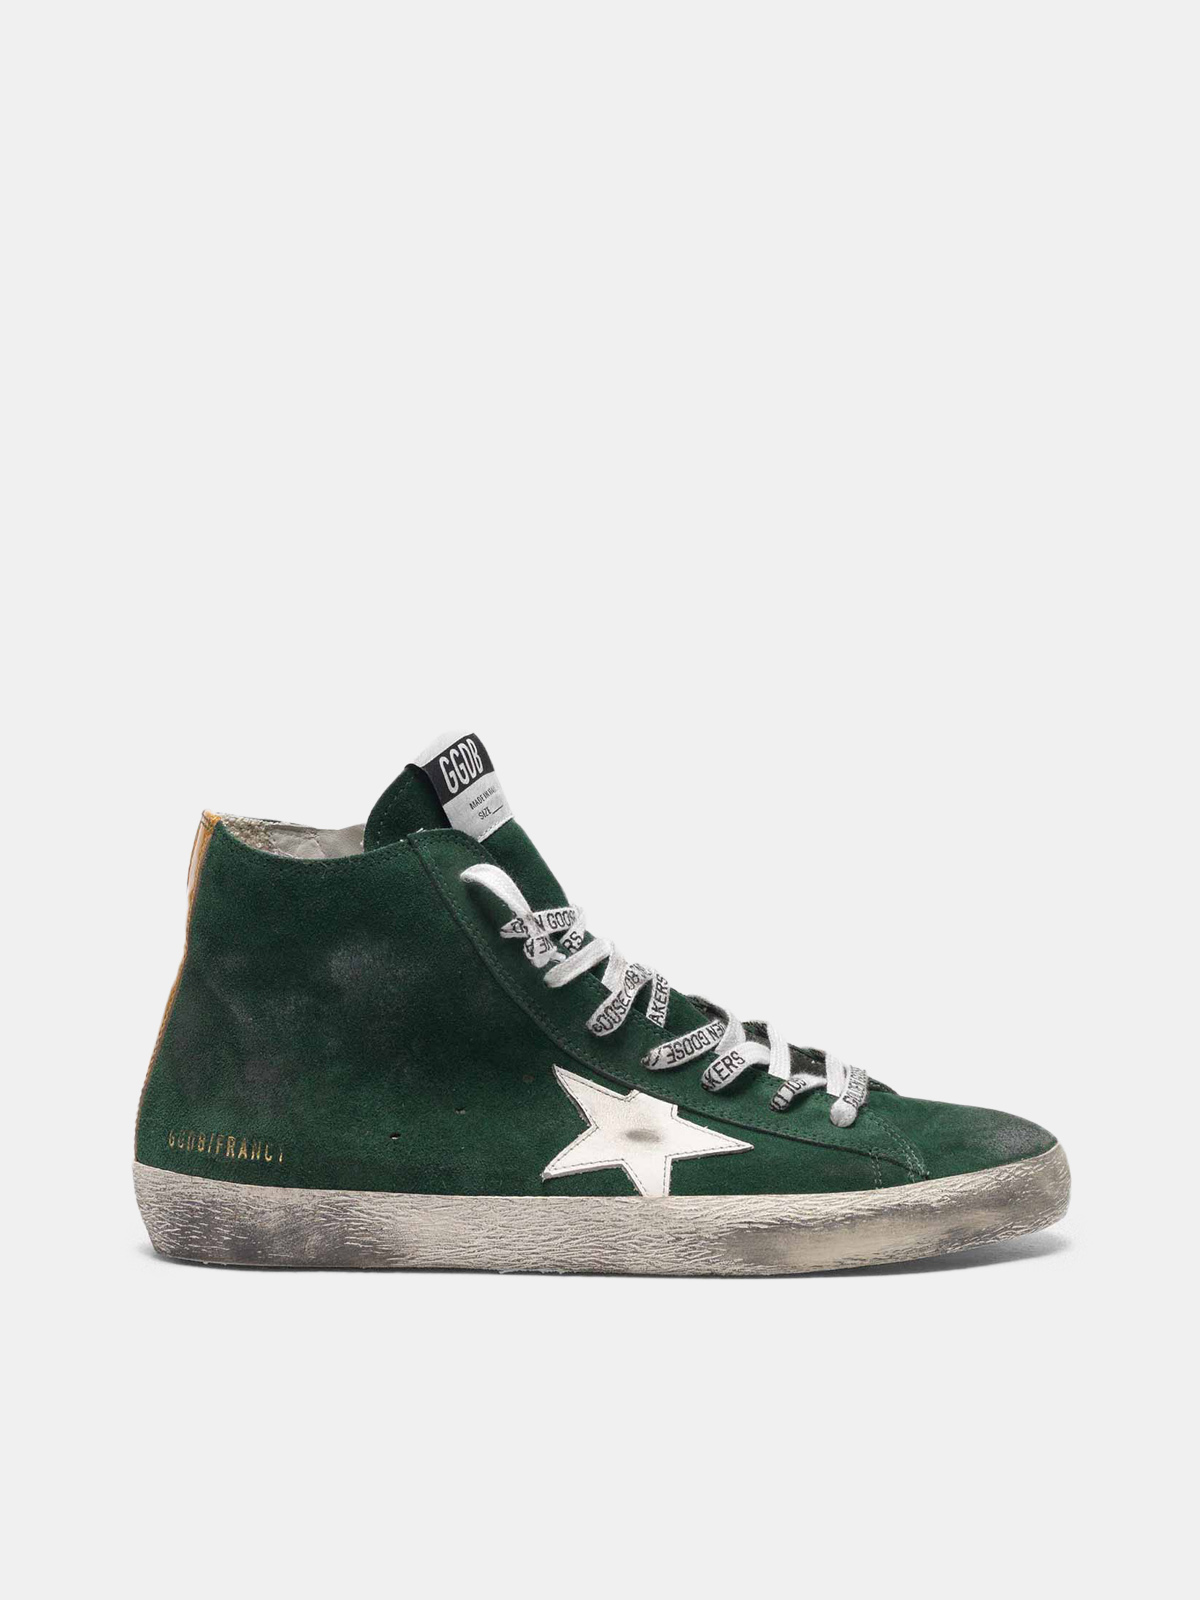 Golden Goose - Francy sneakers in green suede with white star in